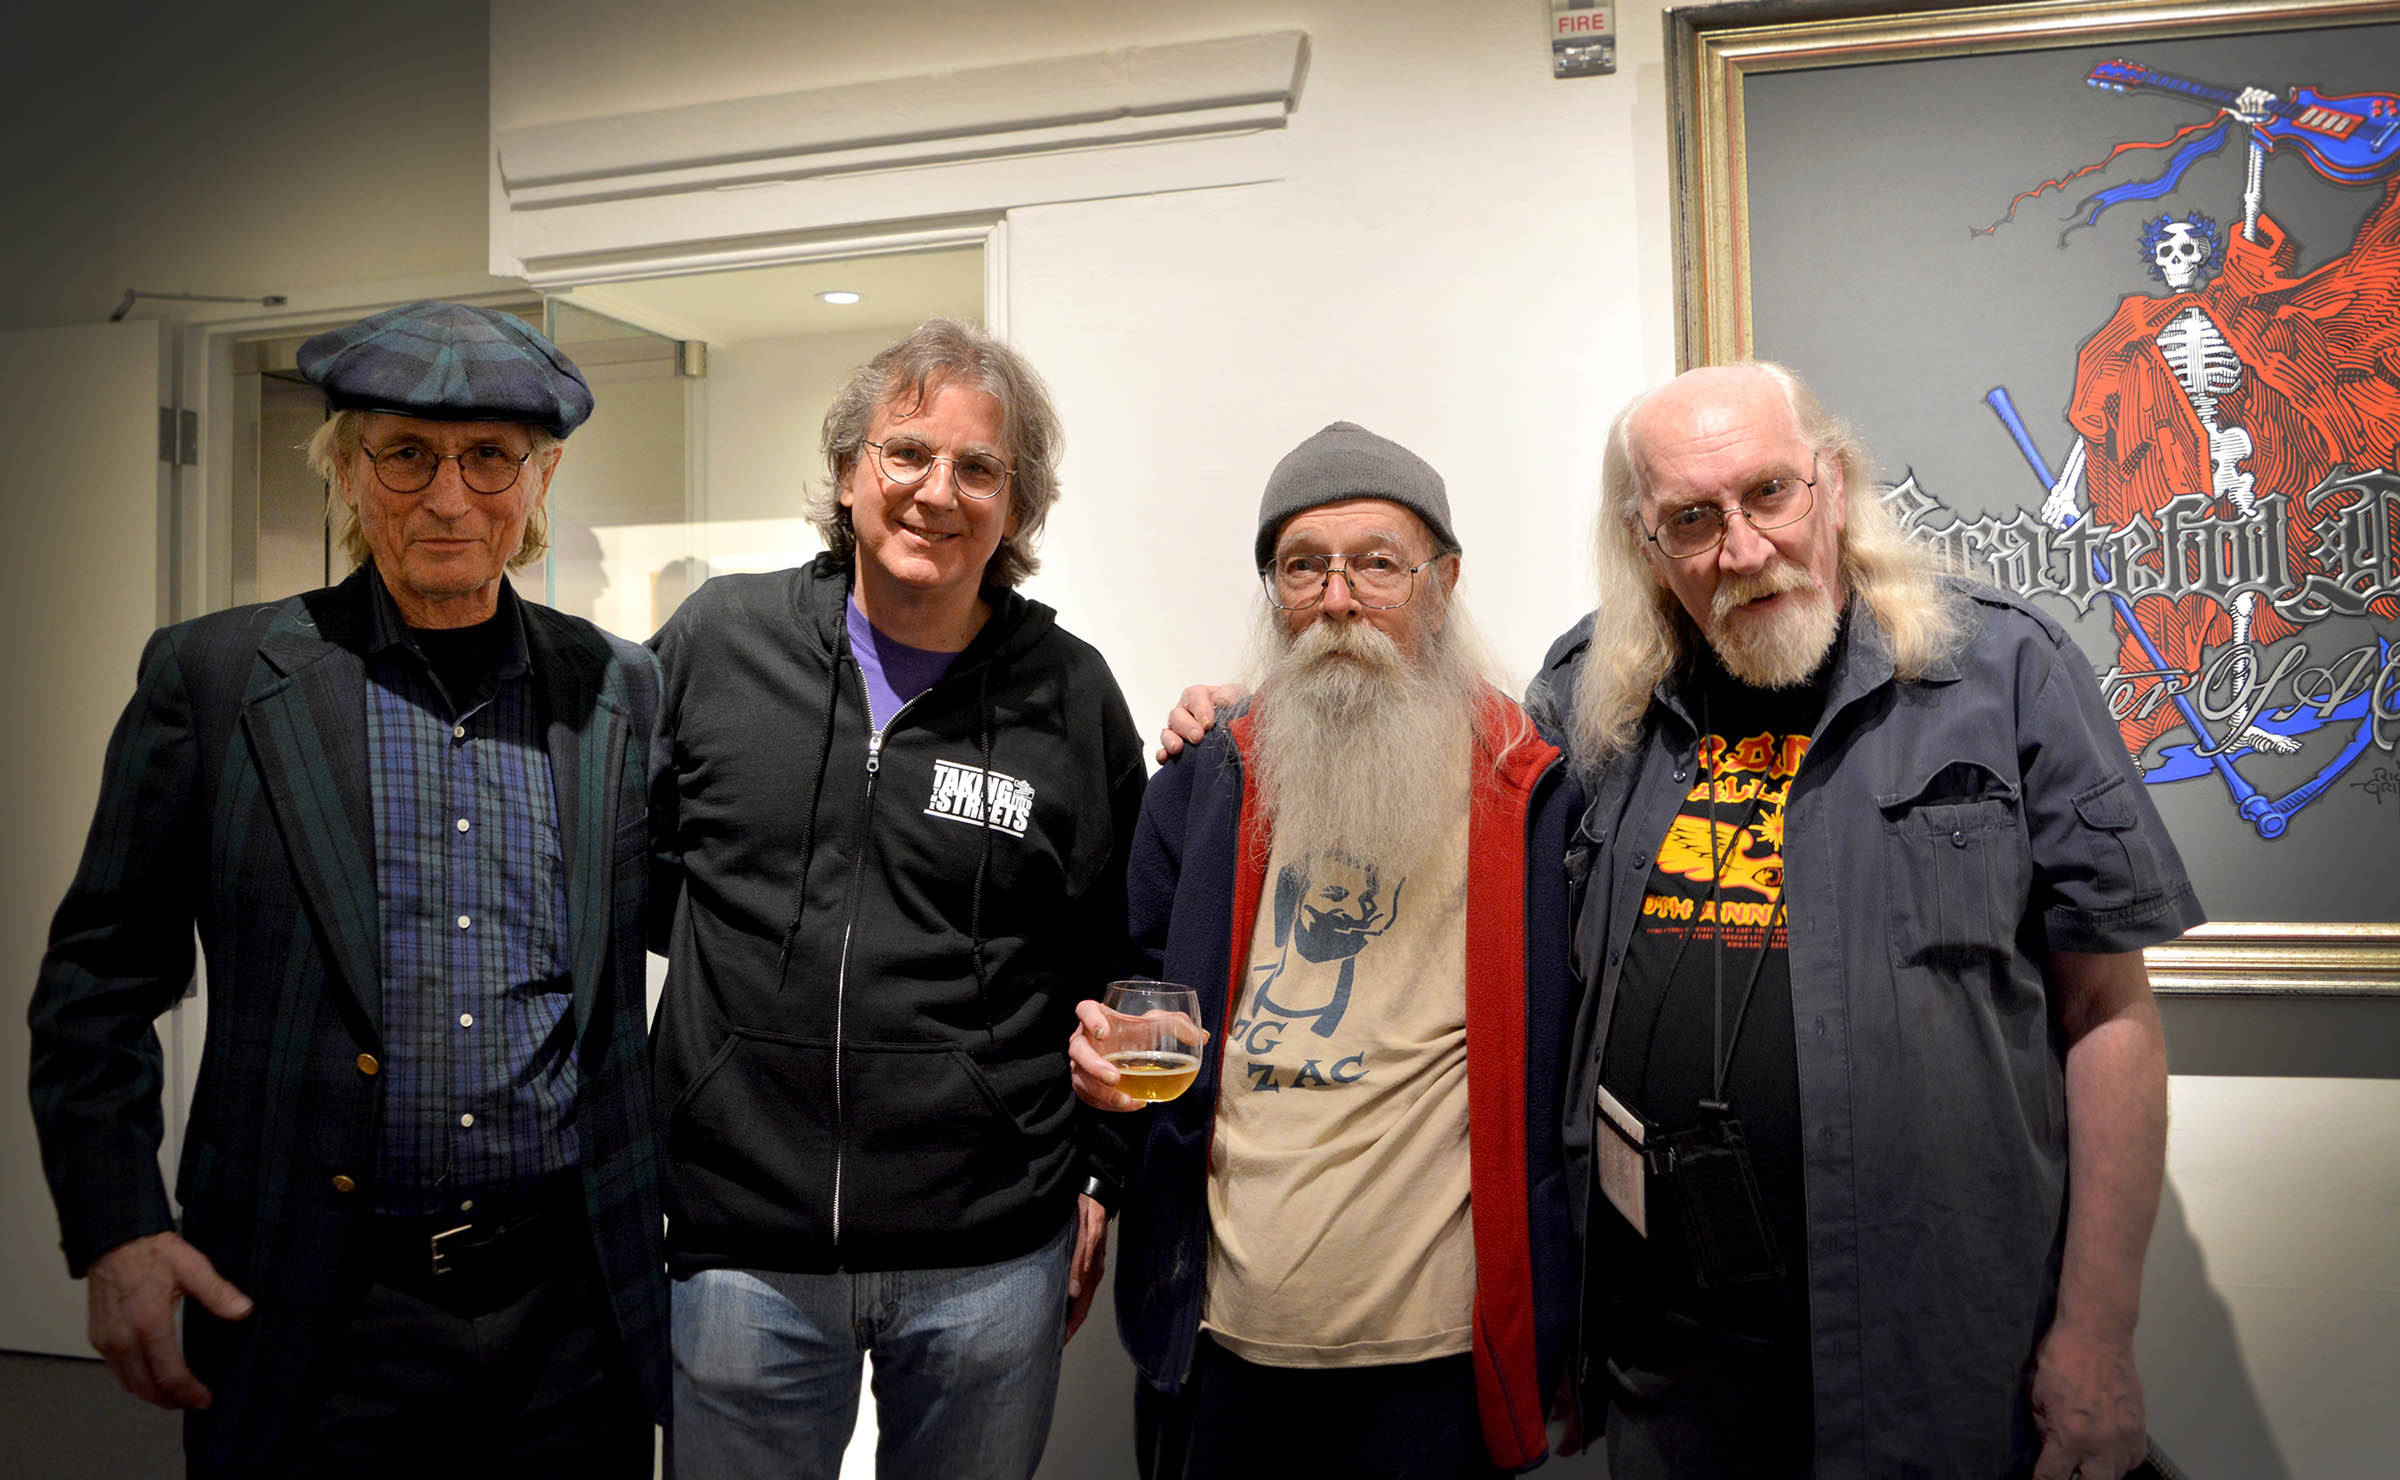 Celebrating Grand Opening of  Haight Street Art Center, SF. George Hunter, Roger McNamee, Bill Ham, and Dennis Loren. photo by emi